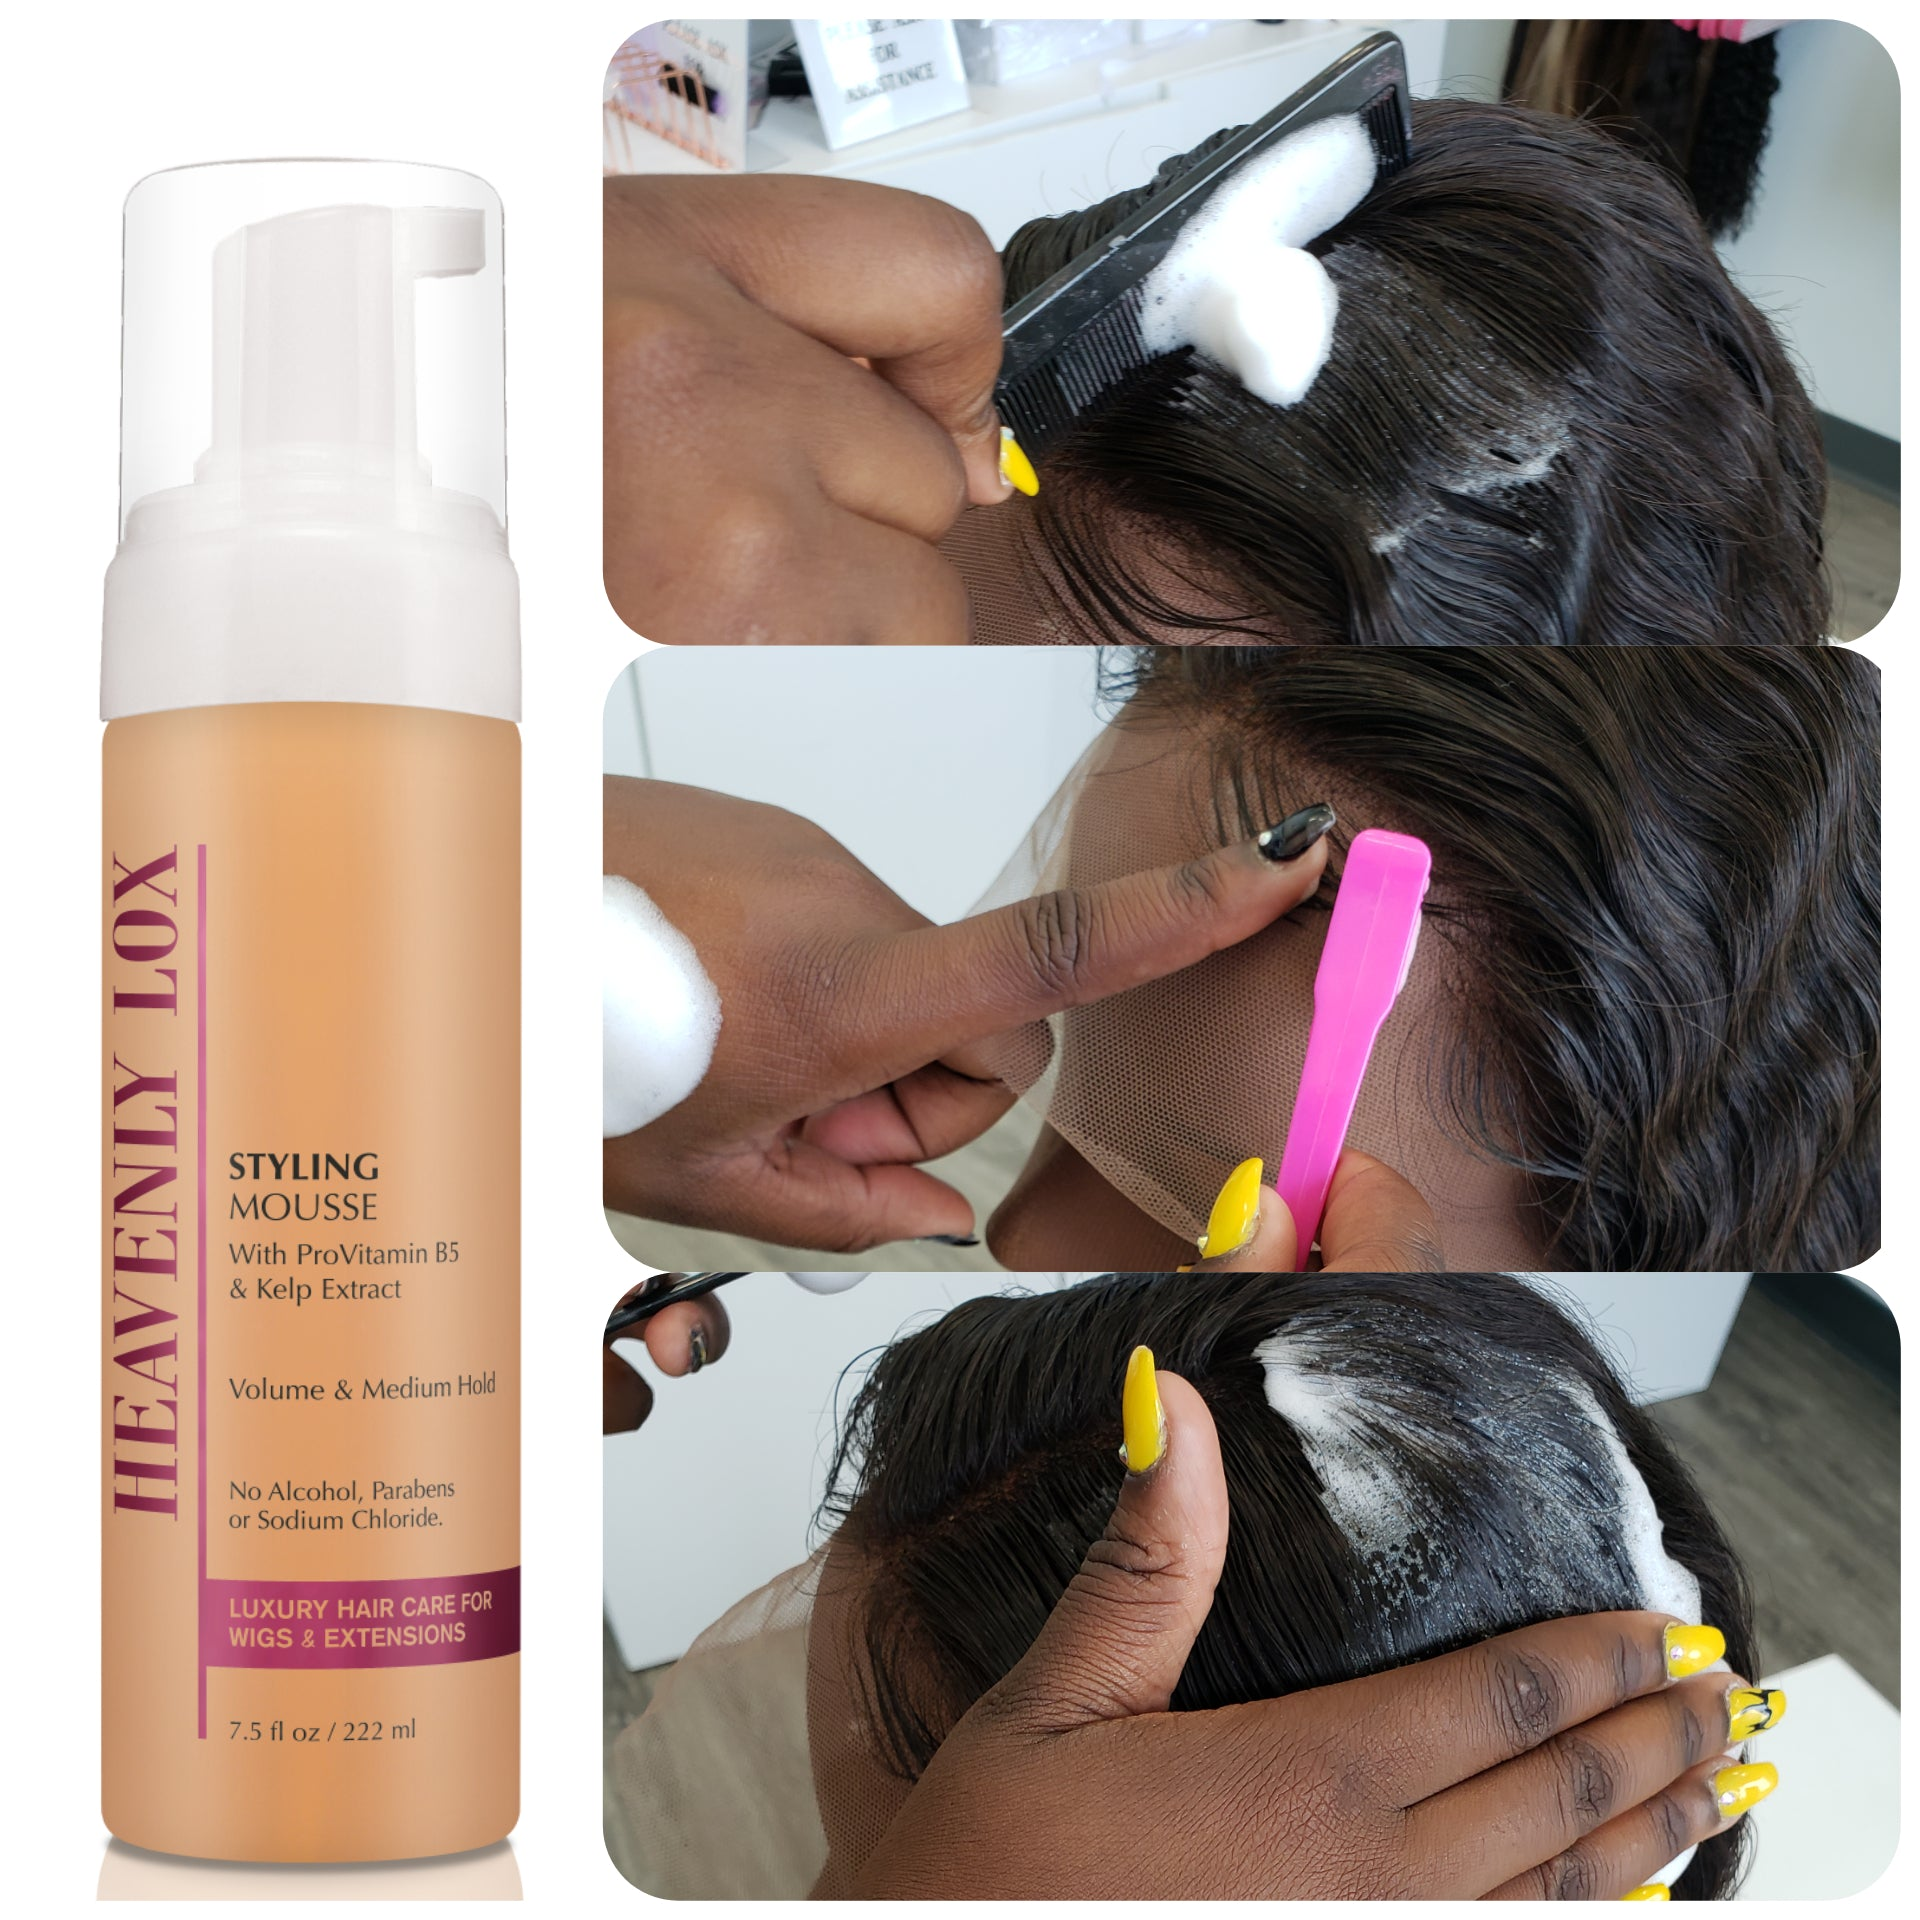 Styling Mousse Heavenly Lox